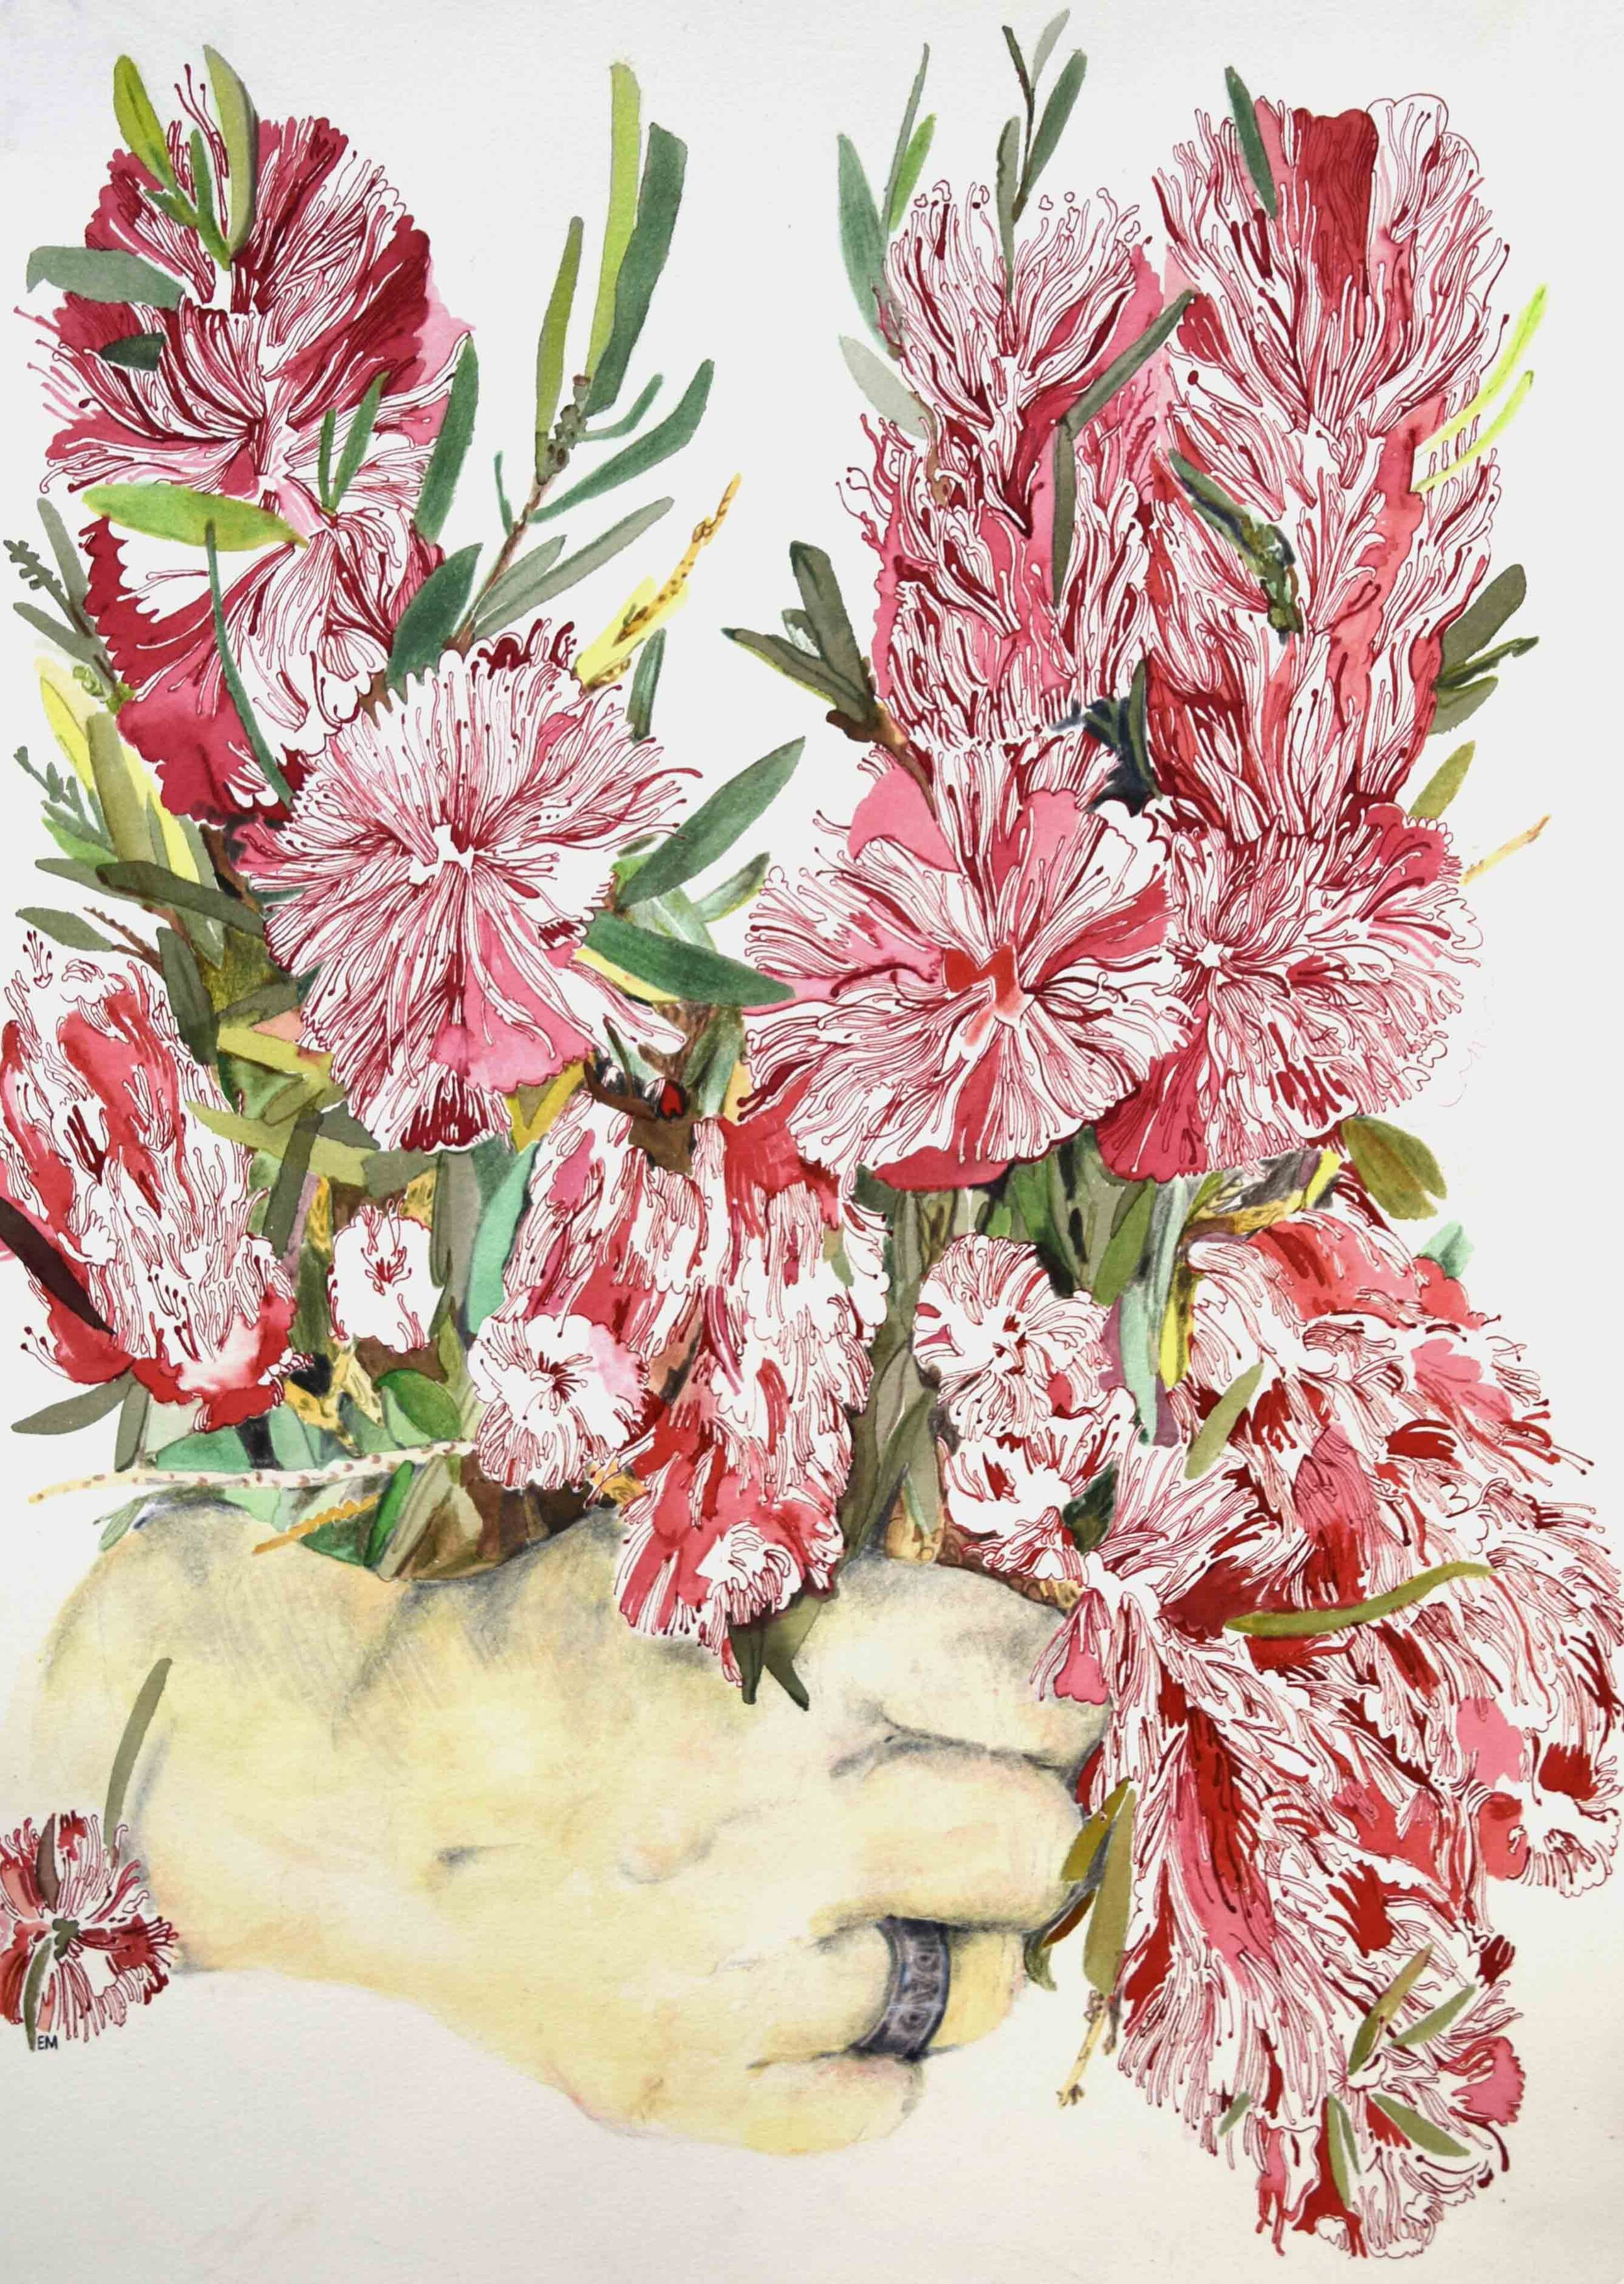 18. Elizabeth Marpole, Steal Life Bouquet of Red Bottlebrushes, 2019, pencil, water colour, ink on paper, 42 x 29.7 cm $270